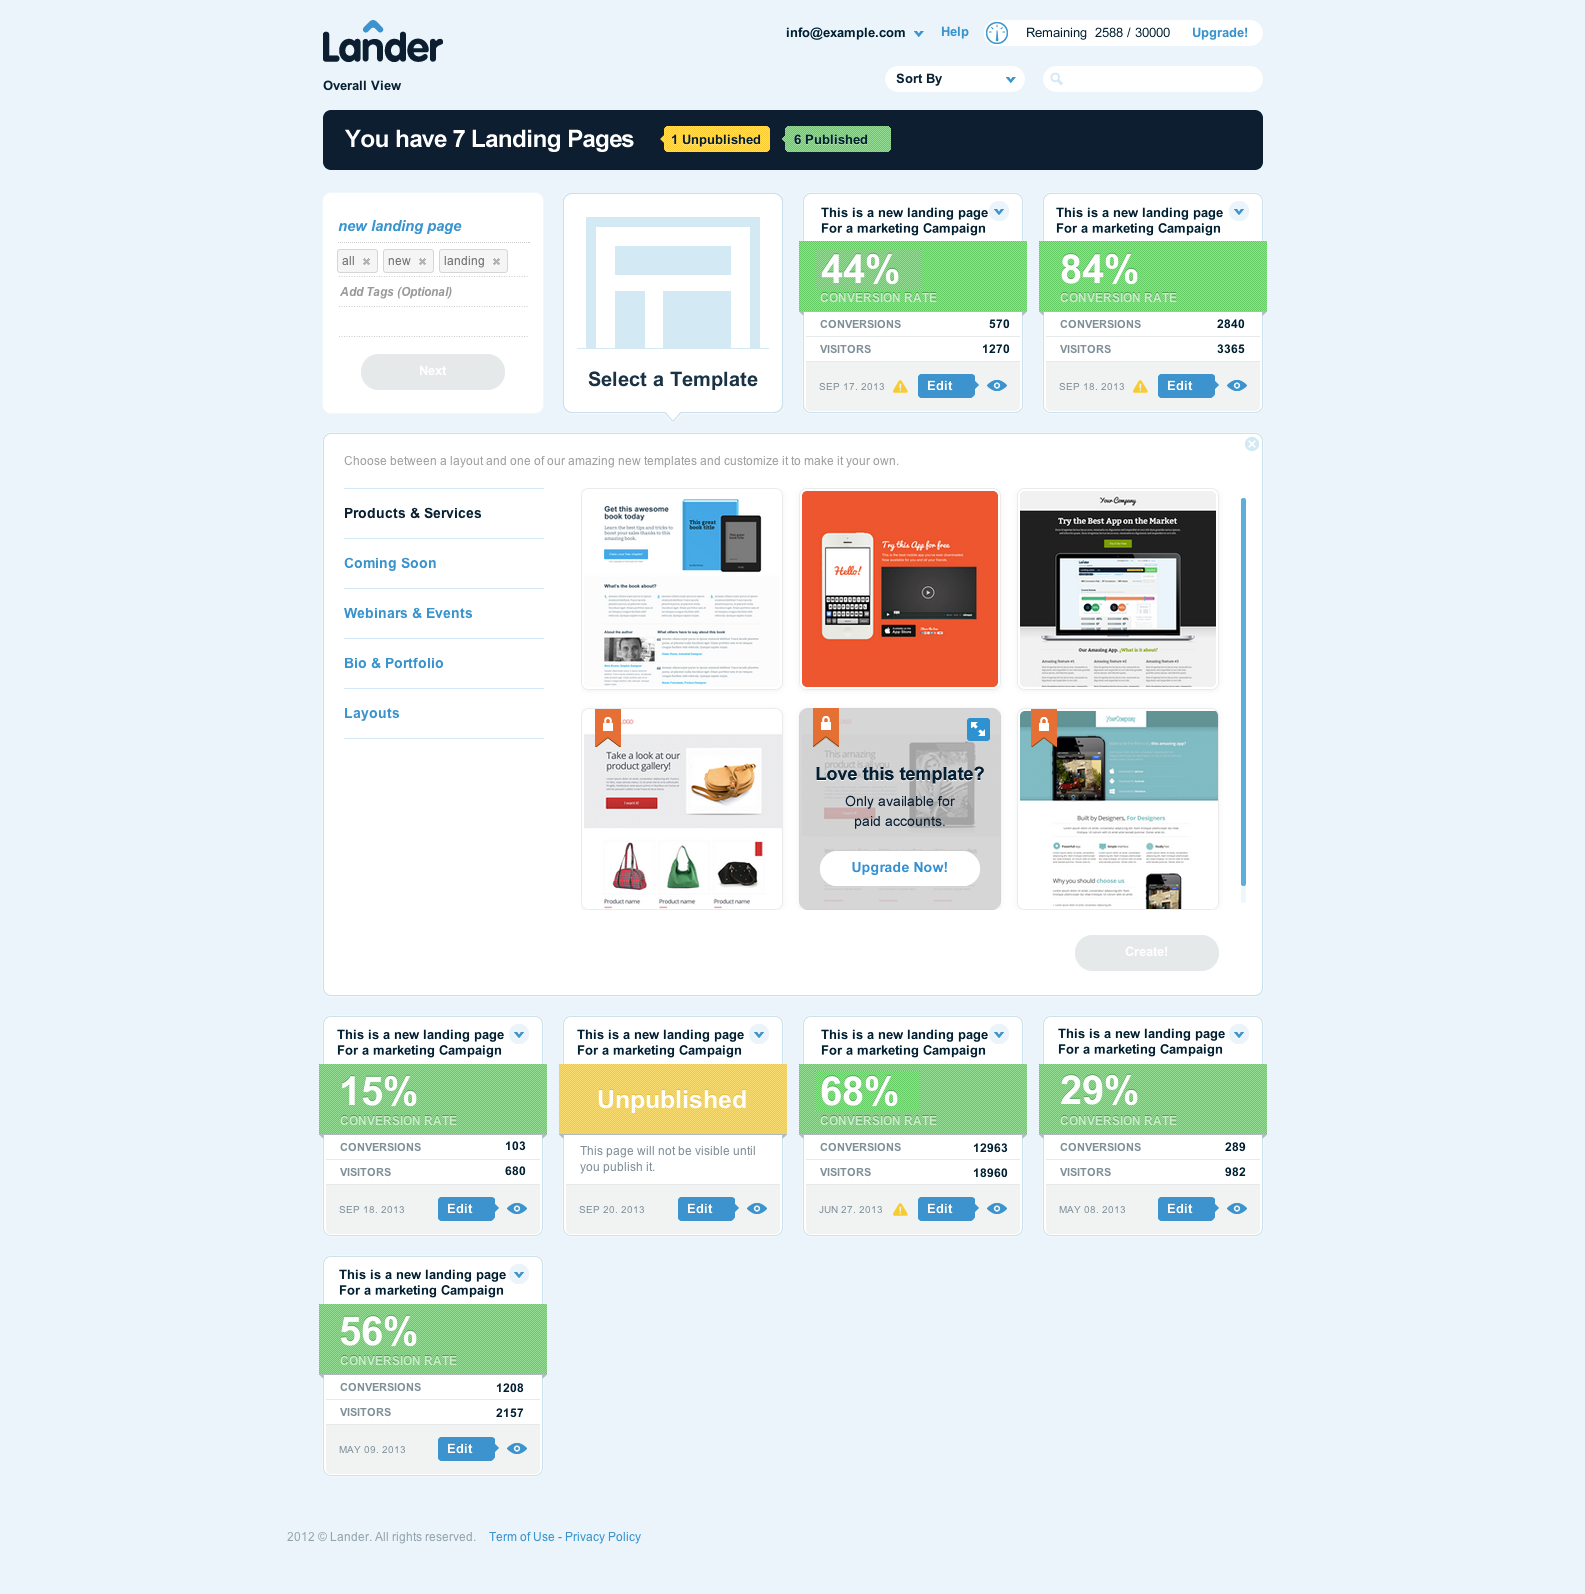 Lander Demo - Customize Landing Page Templates